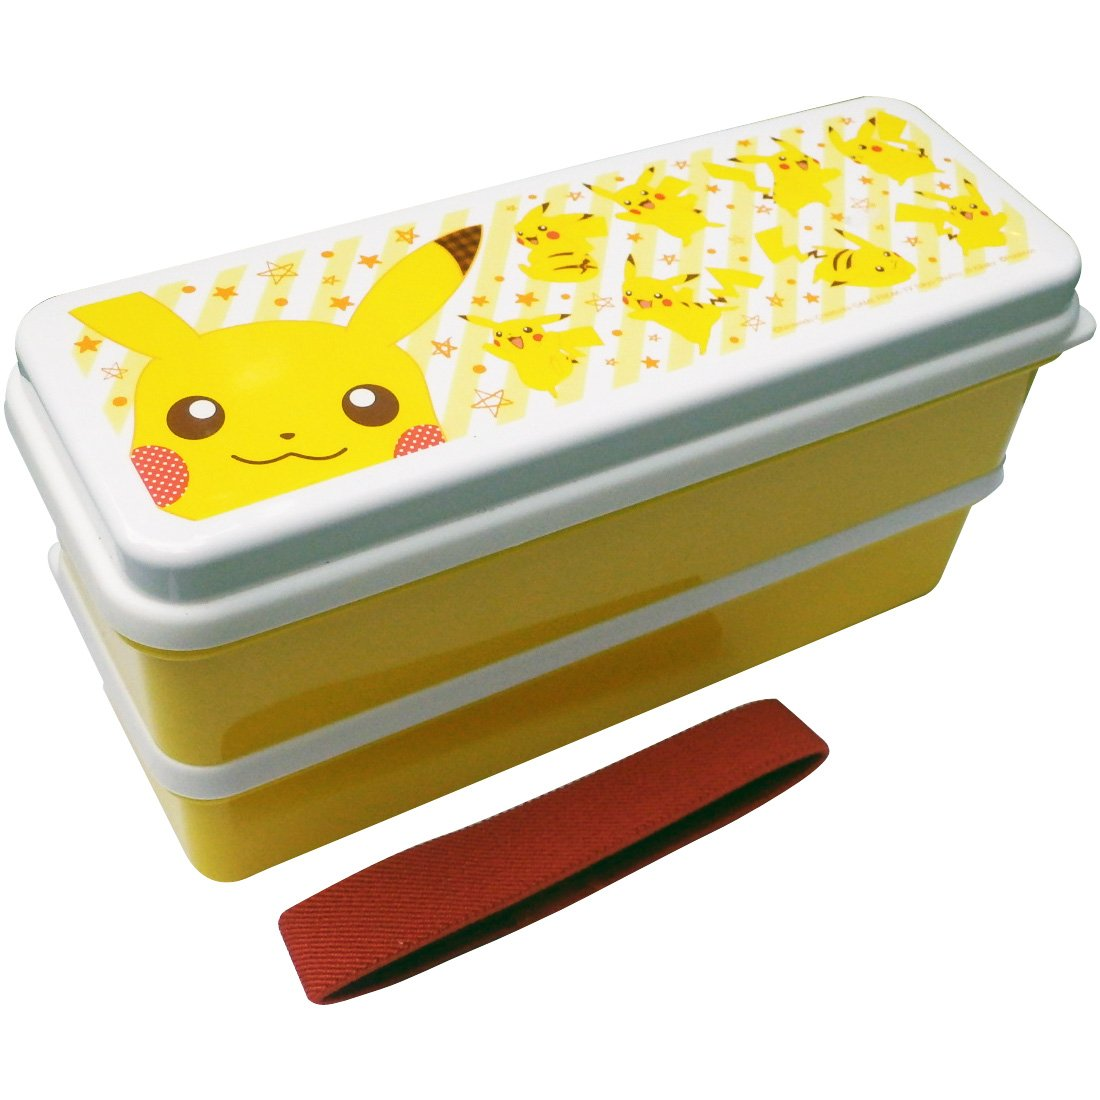 Pokemon silicon Shirubuta two-stage lunch box 630ml Pikachu full PMLC180 by Small Planet